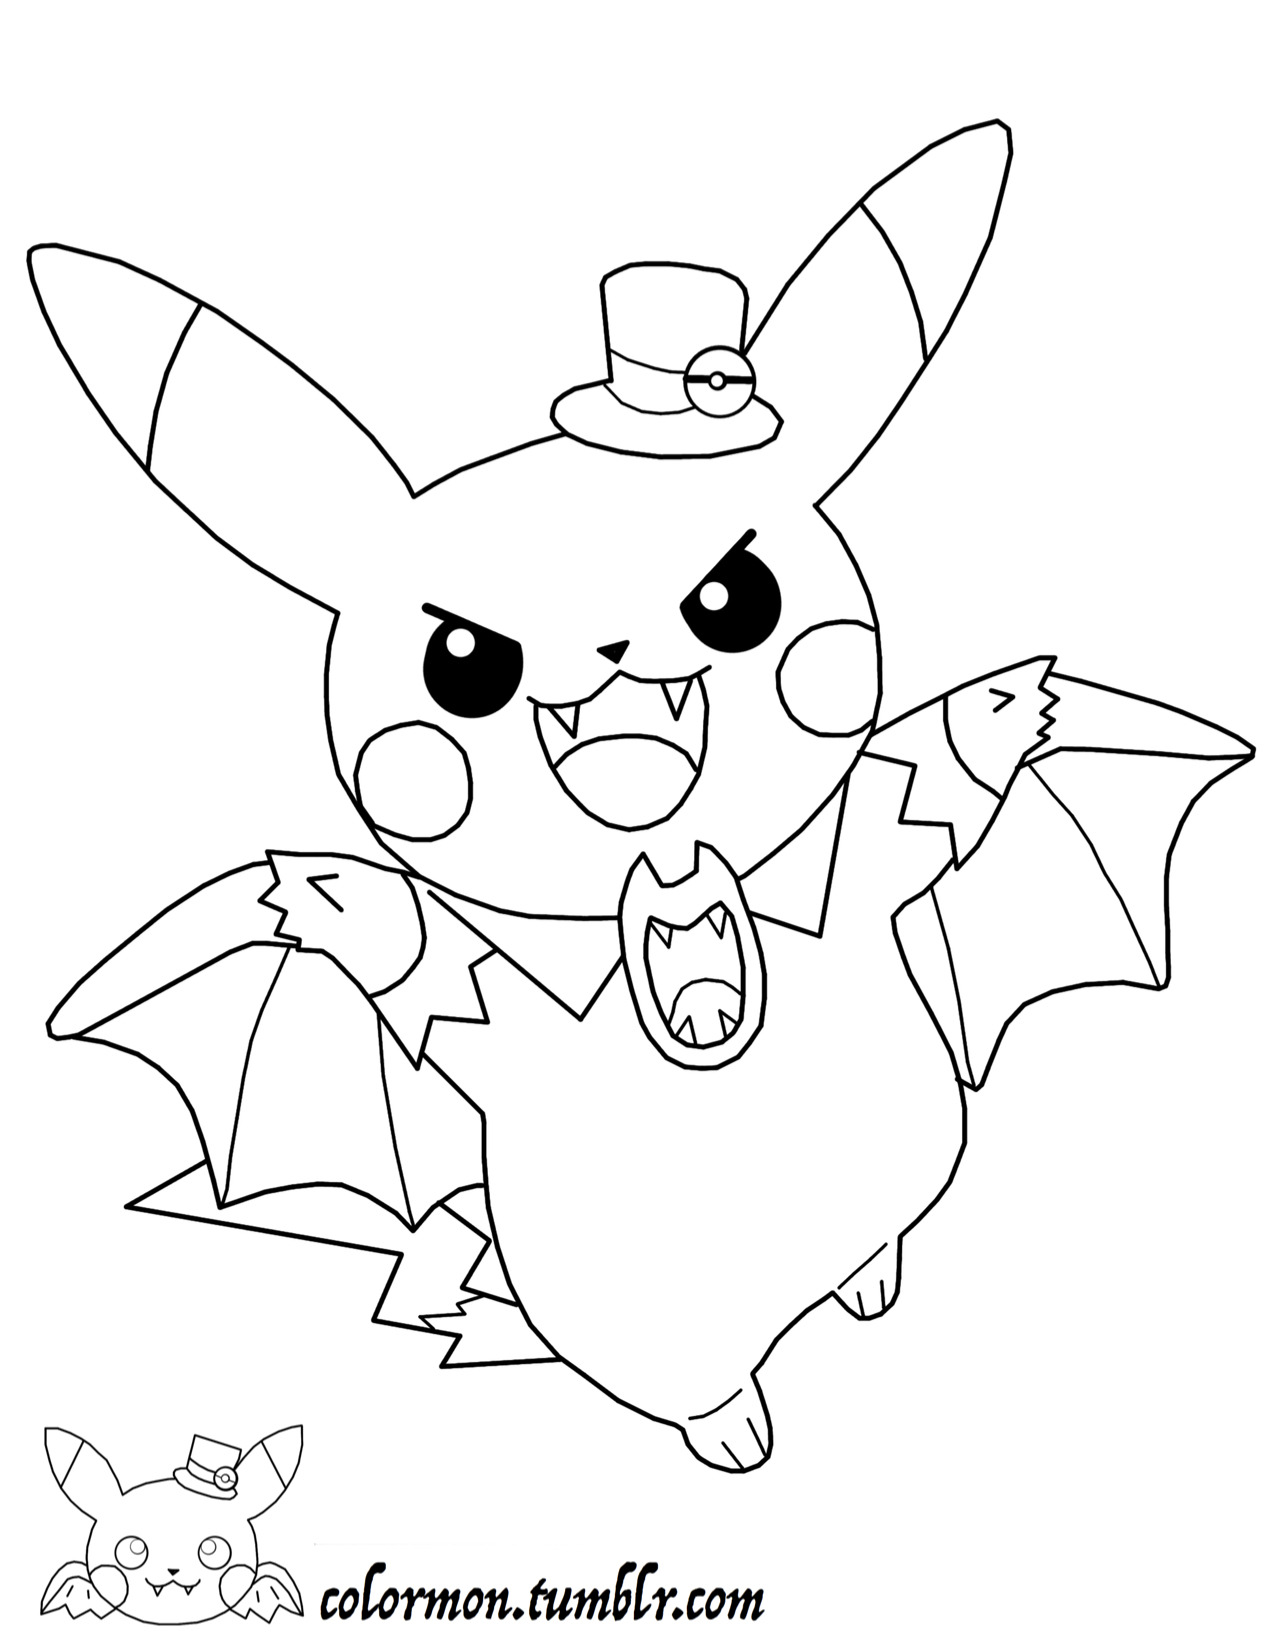 cute adorable pikachu coloring pages printable pikachu coloring pages for kids cool2bkids pages coloring pikachu cute adorable